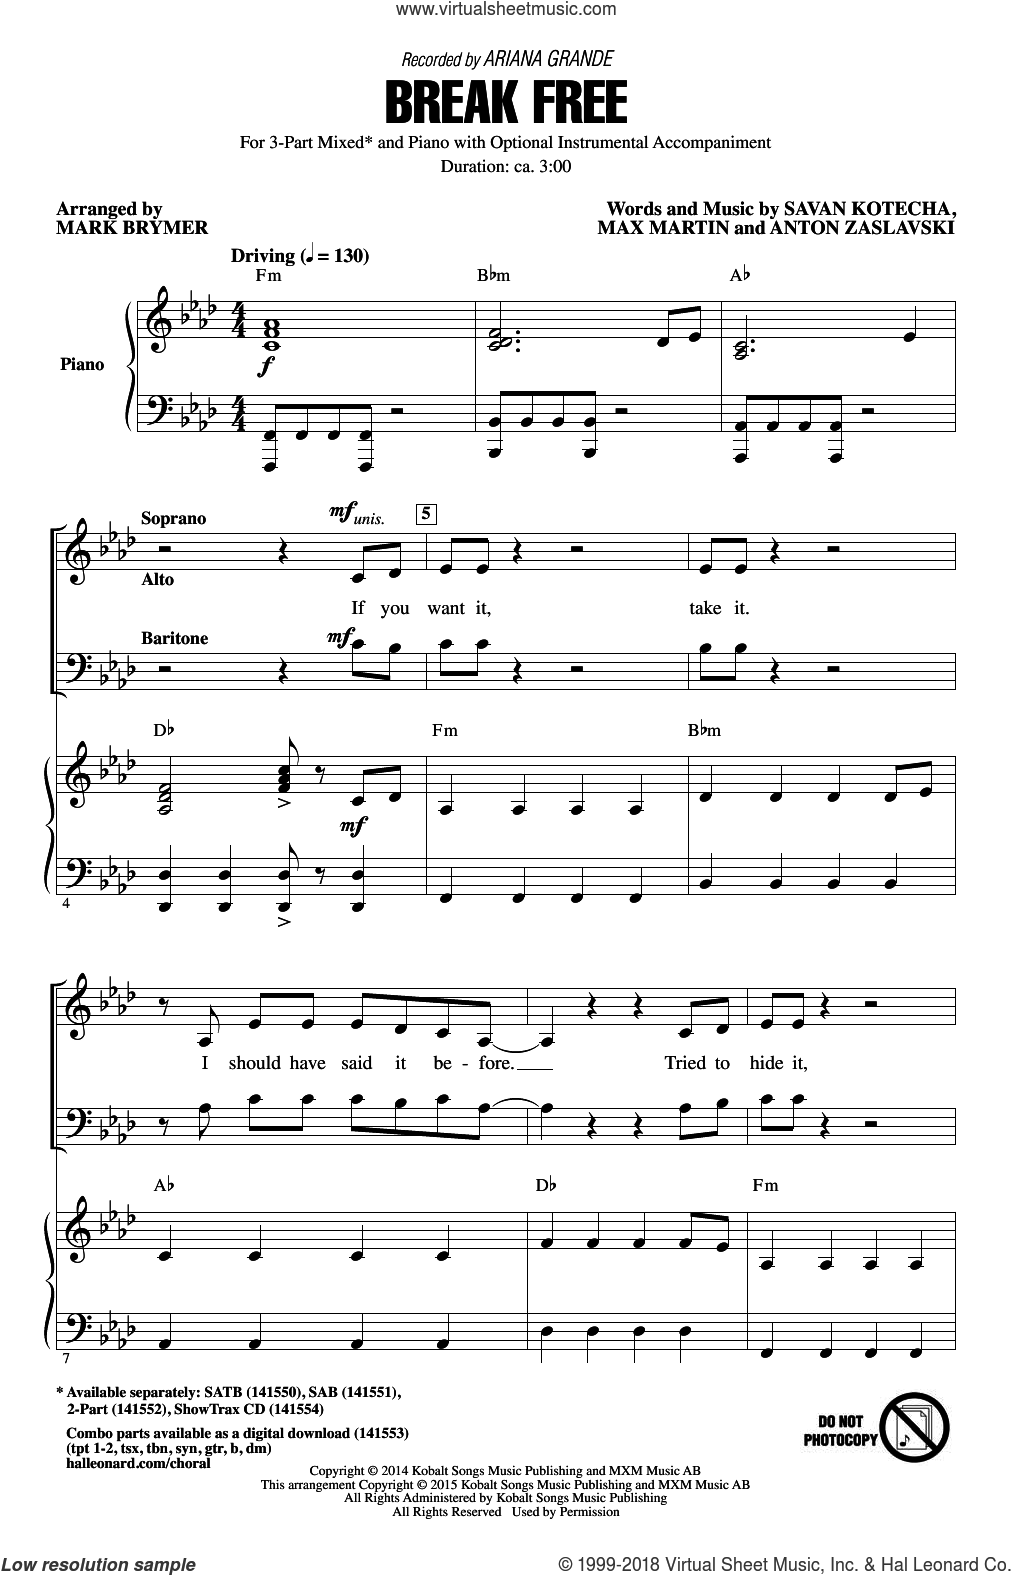 Break Free sheet music for choir and piano (chamber ensemble) by Mark Brymer, Ariana Grande, Anton Zaslavski, Max Martin and Savan Kotecha. Score Image Preview.